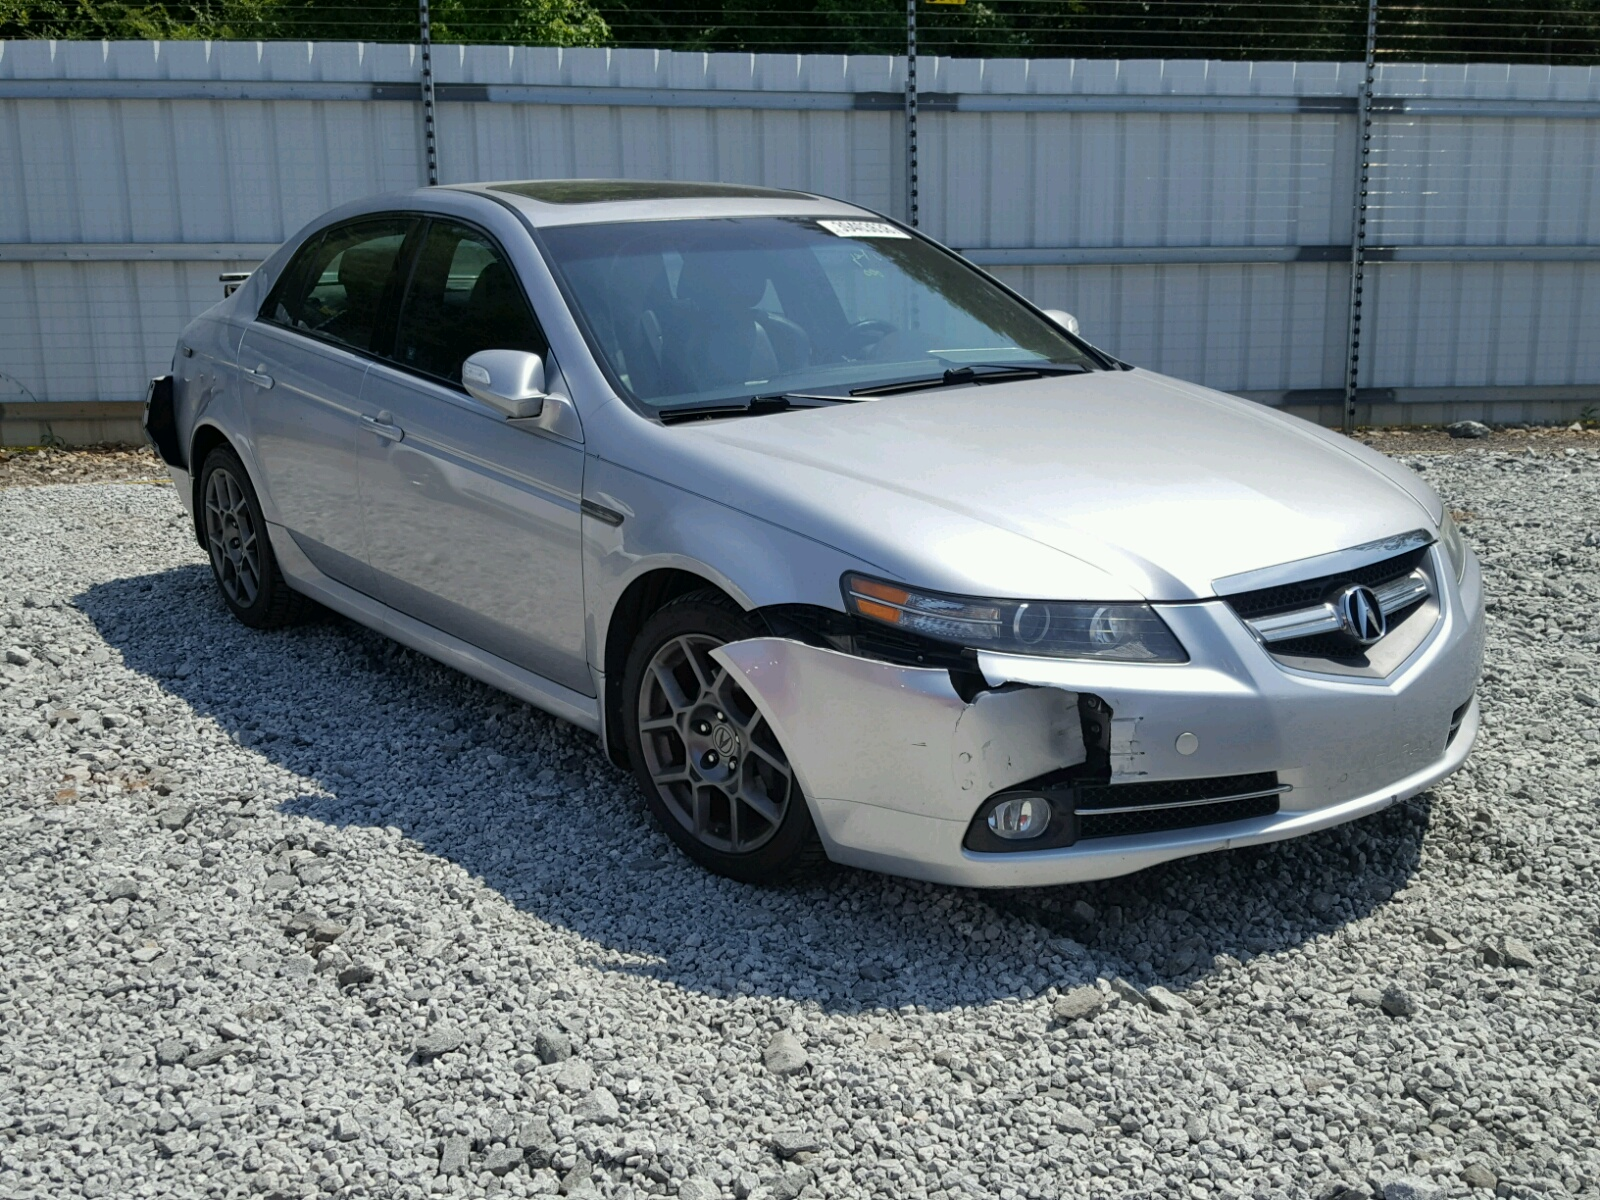 Acura TL Type S For Sale At Copart Spartanburg SC Lot - Acura type s for sale